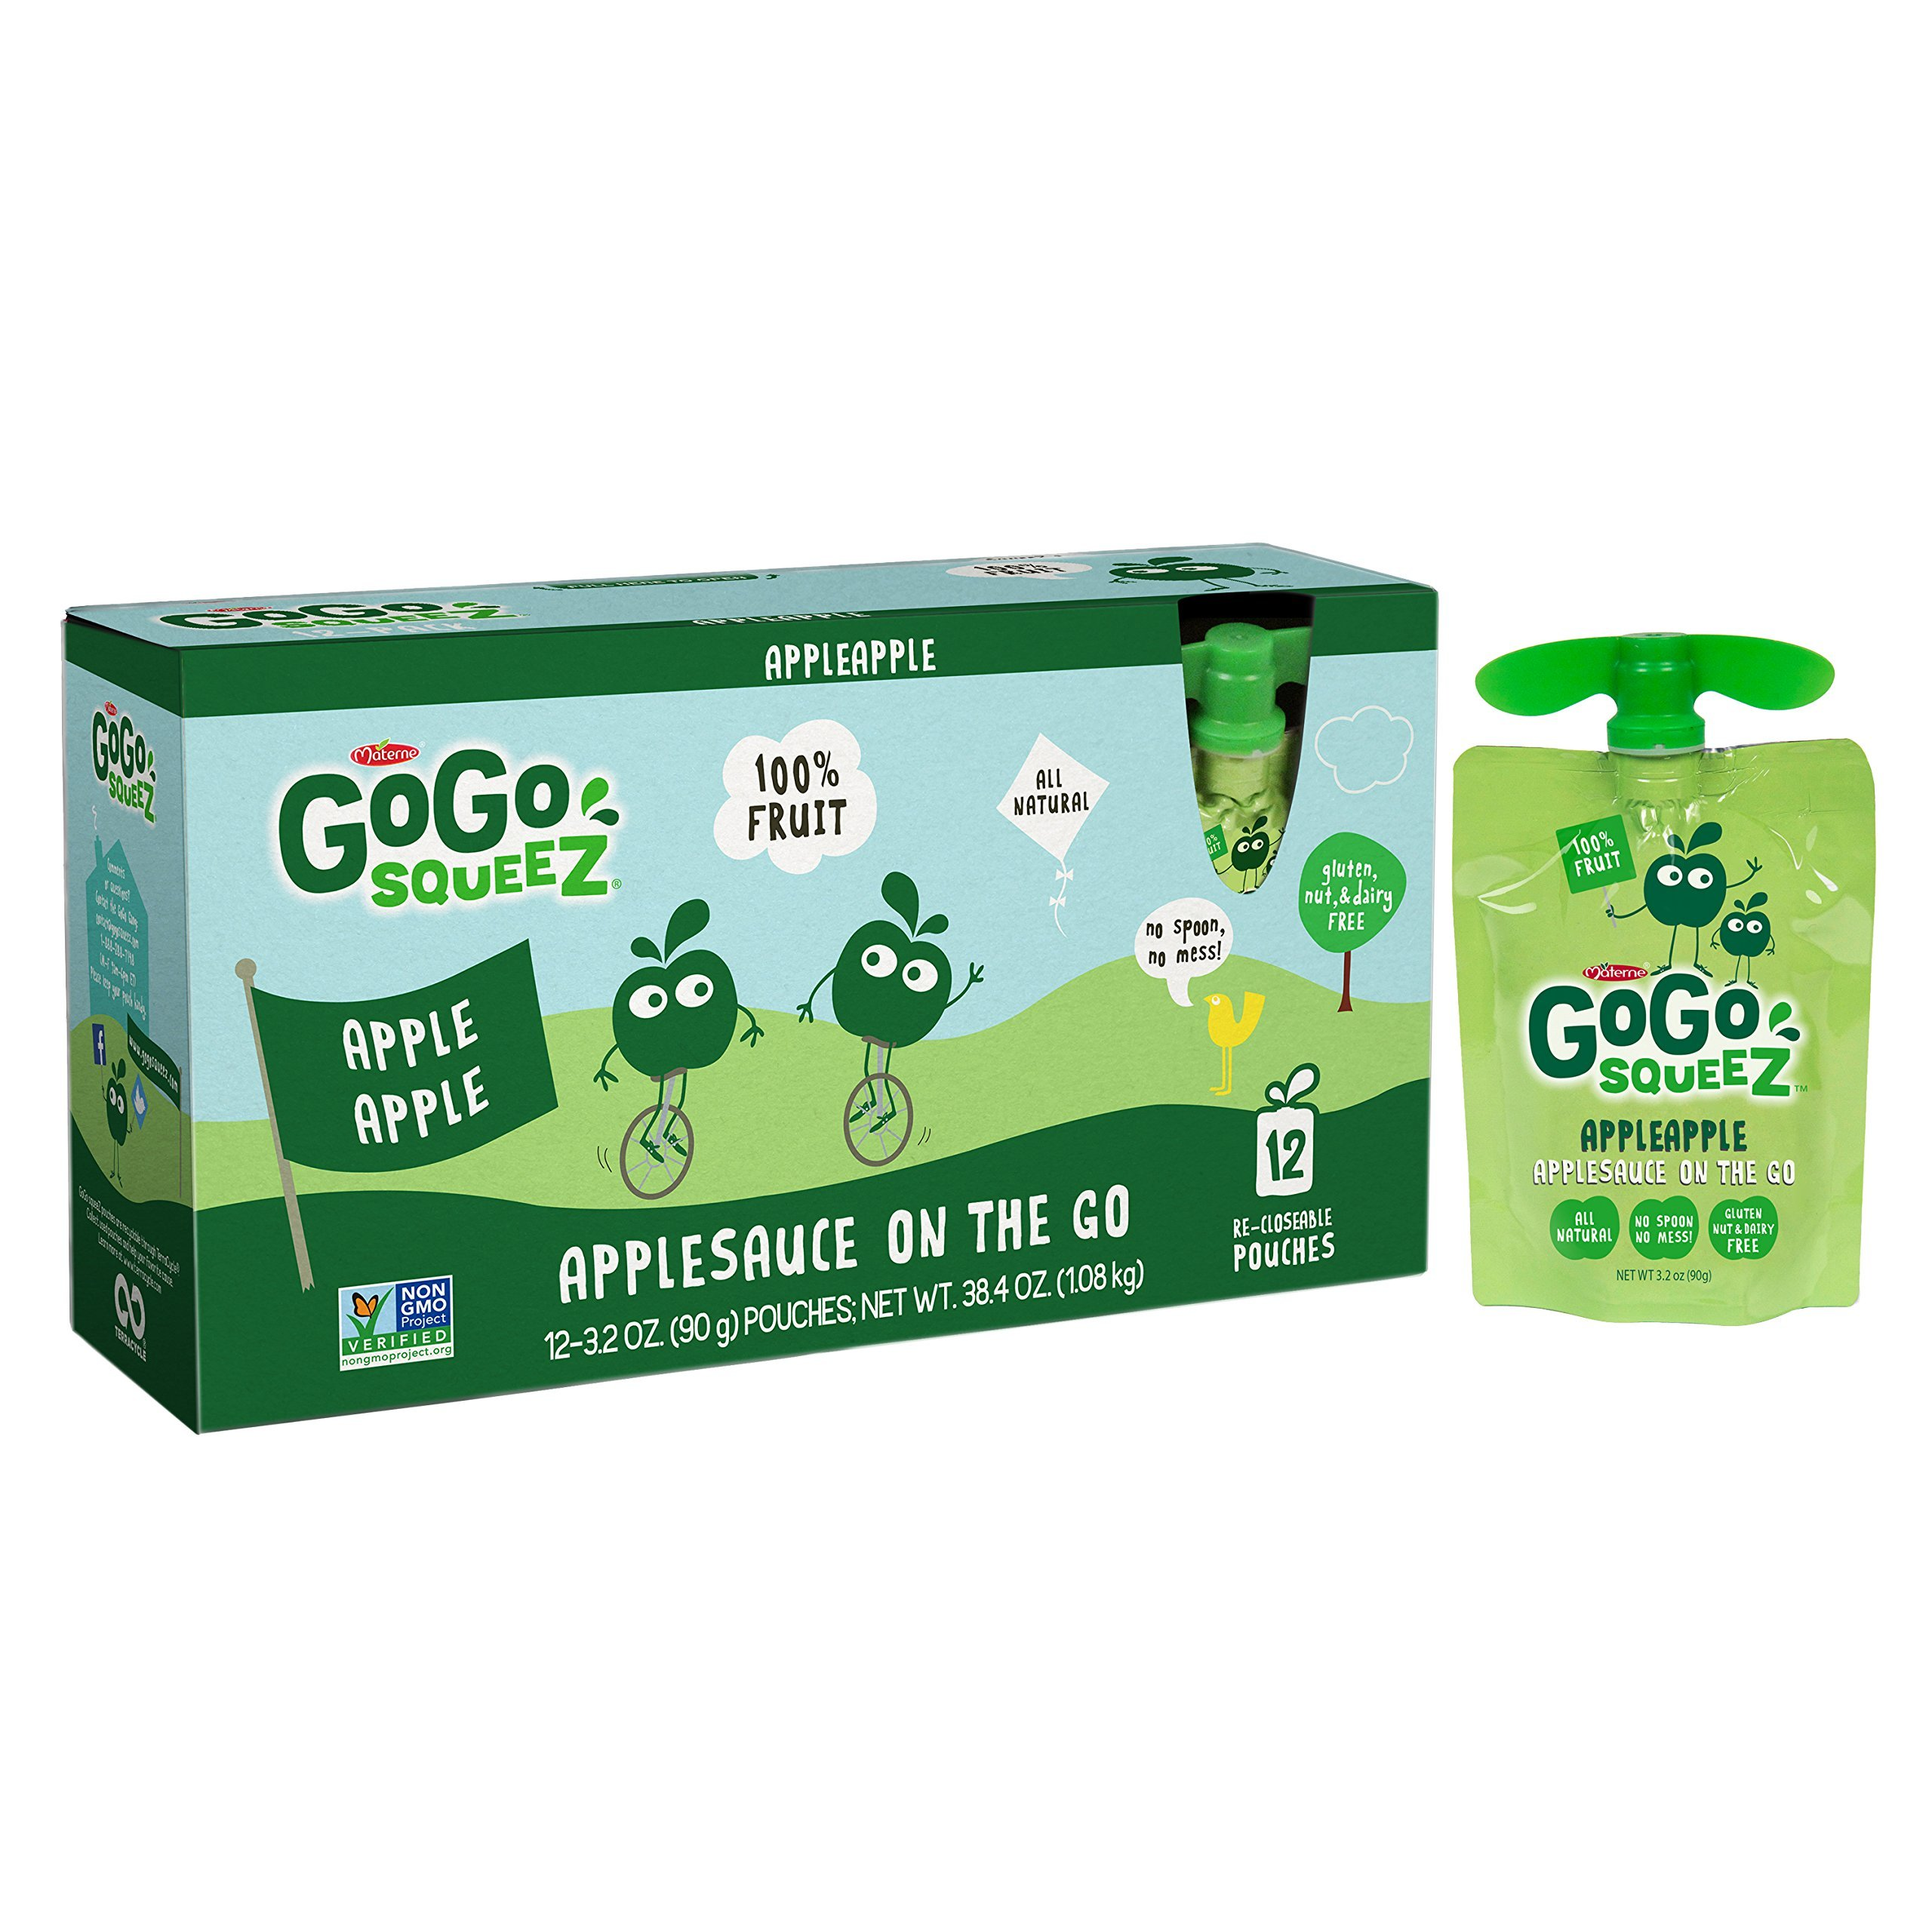 GoGo squeeZ Applesauce on the Go, Apple Apple, 3.2 Ounce Portable BPA-Free Pouches, Gluten-Free, 12 Total Pouches